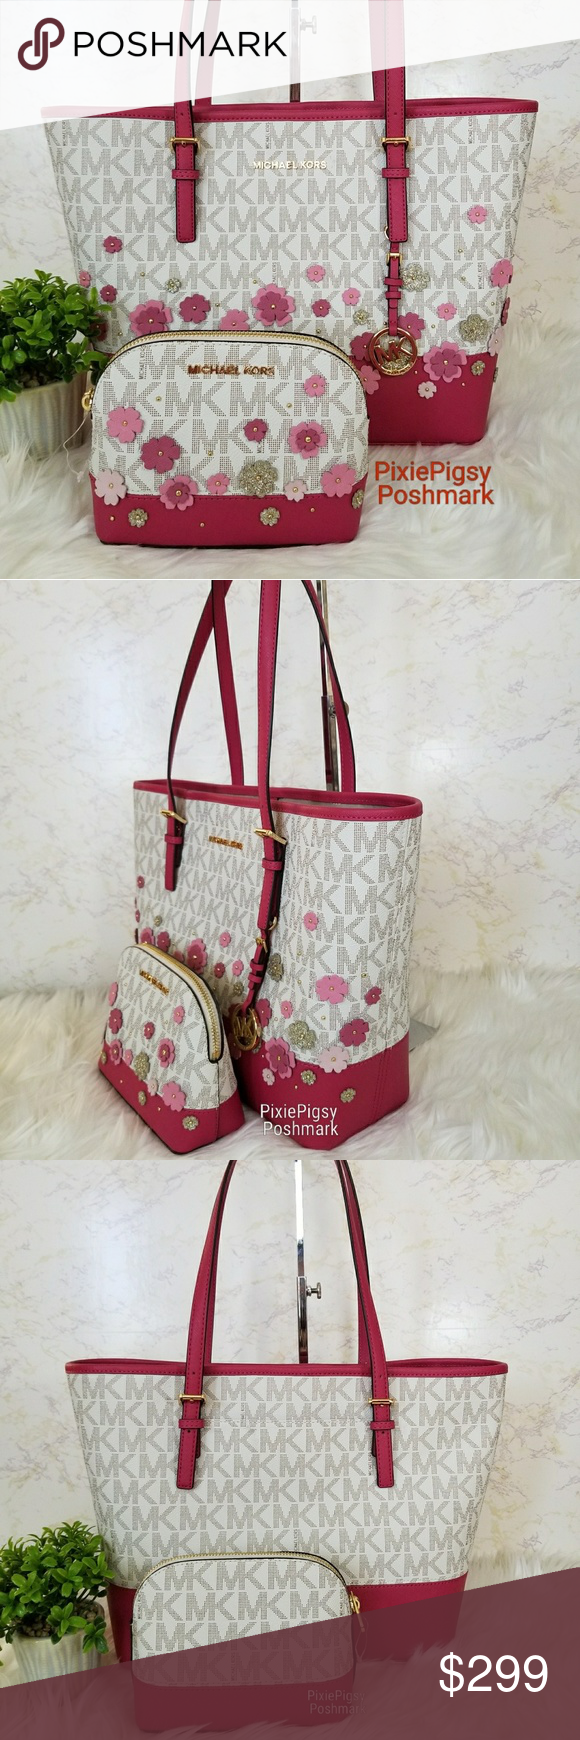 fc41b0832ad5ca Michael Kors Jet Set Floral Applique Bag Pouch Set Brand new with tags. (Tag